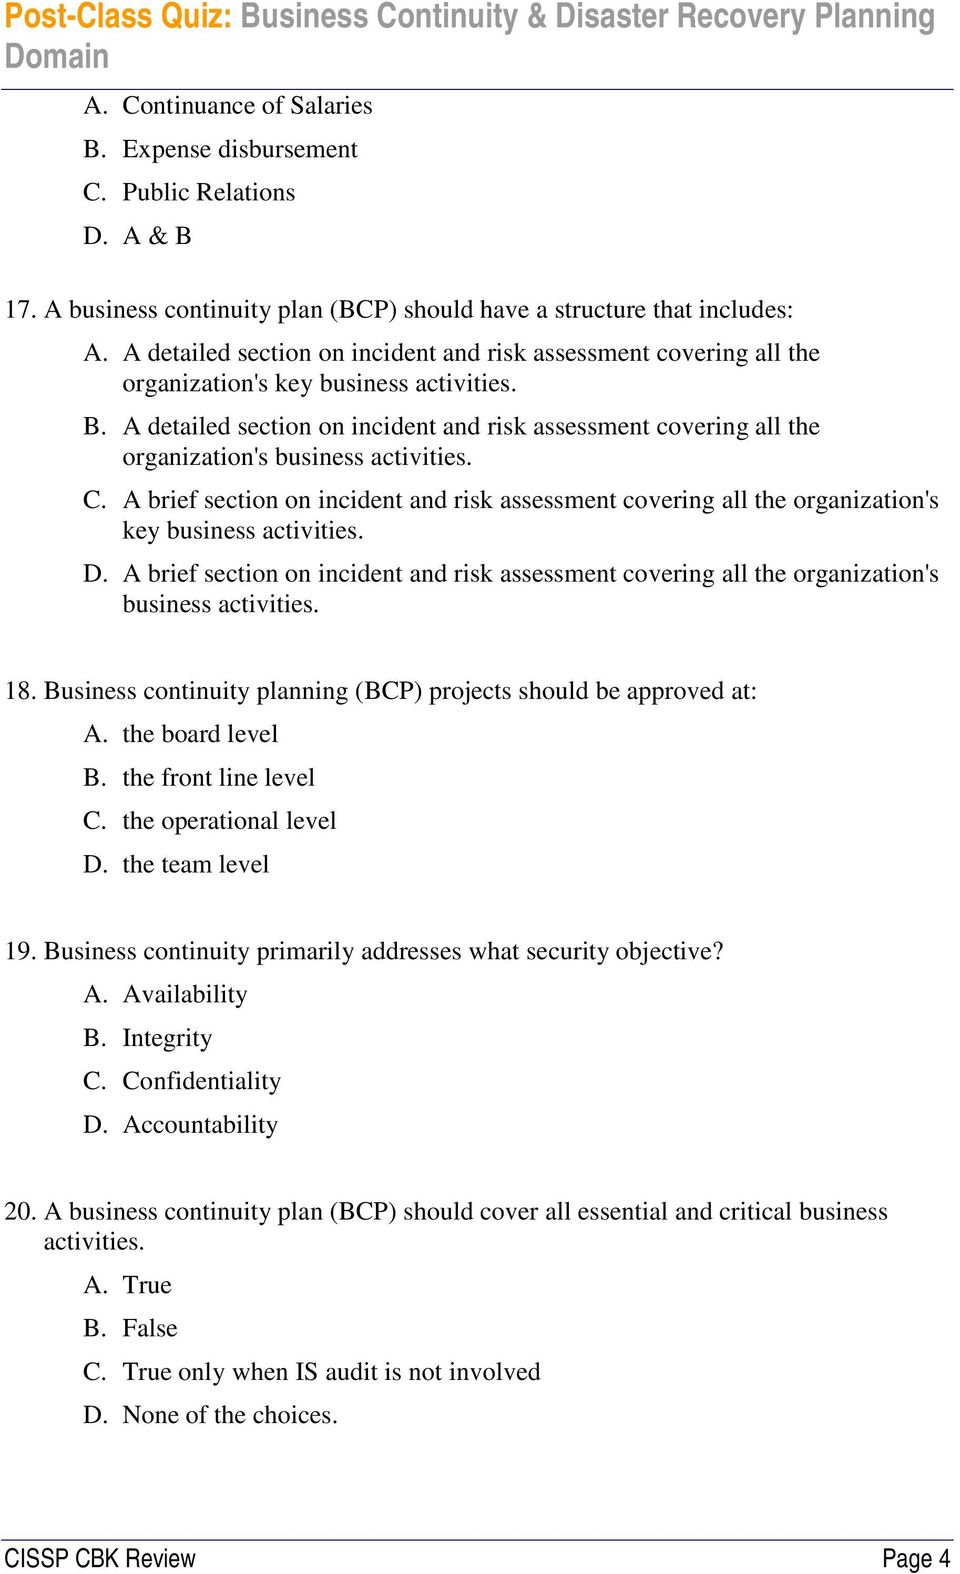 A detailed section on incident and risk assessment covering all the organization's business activities. C.